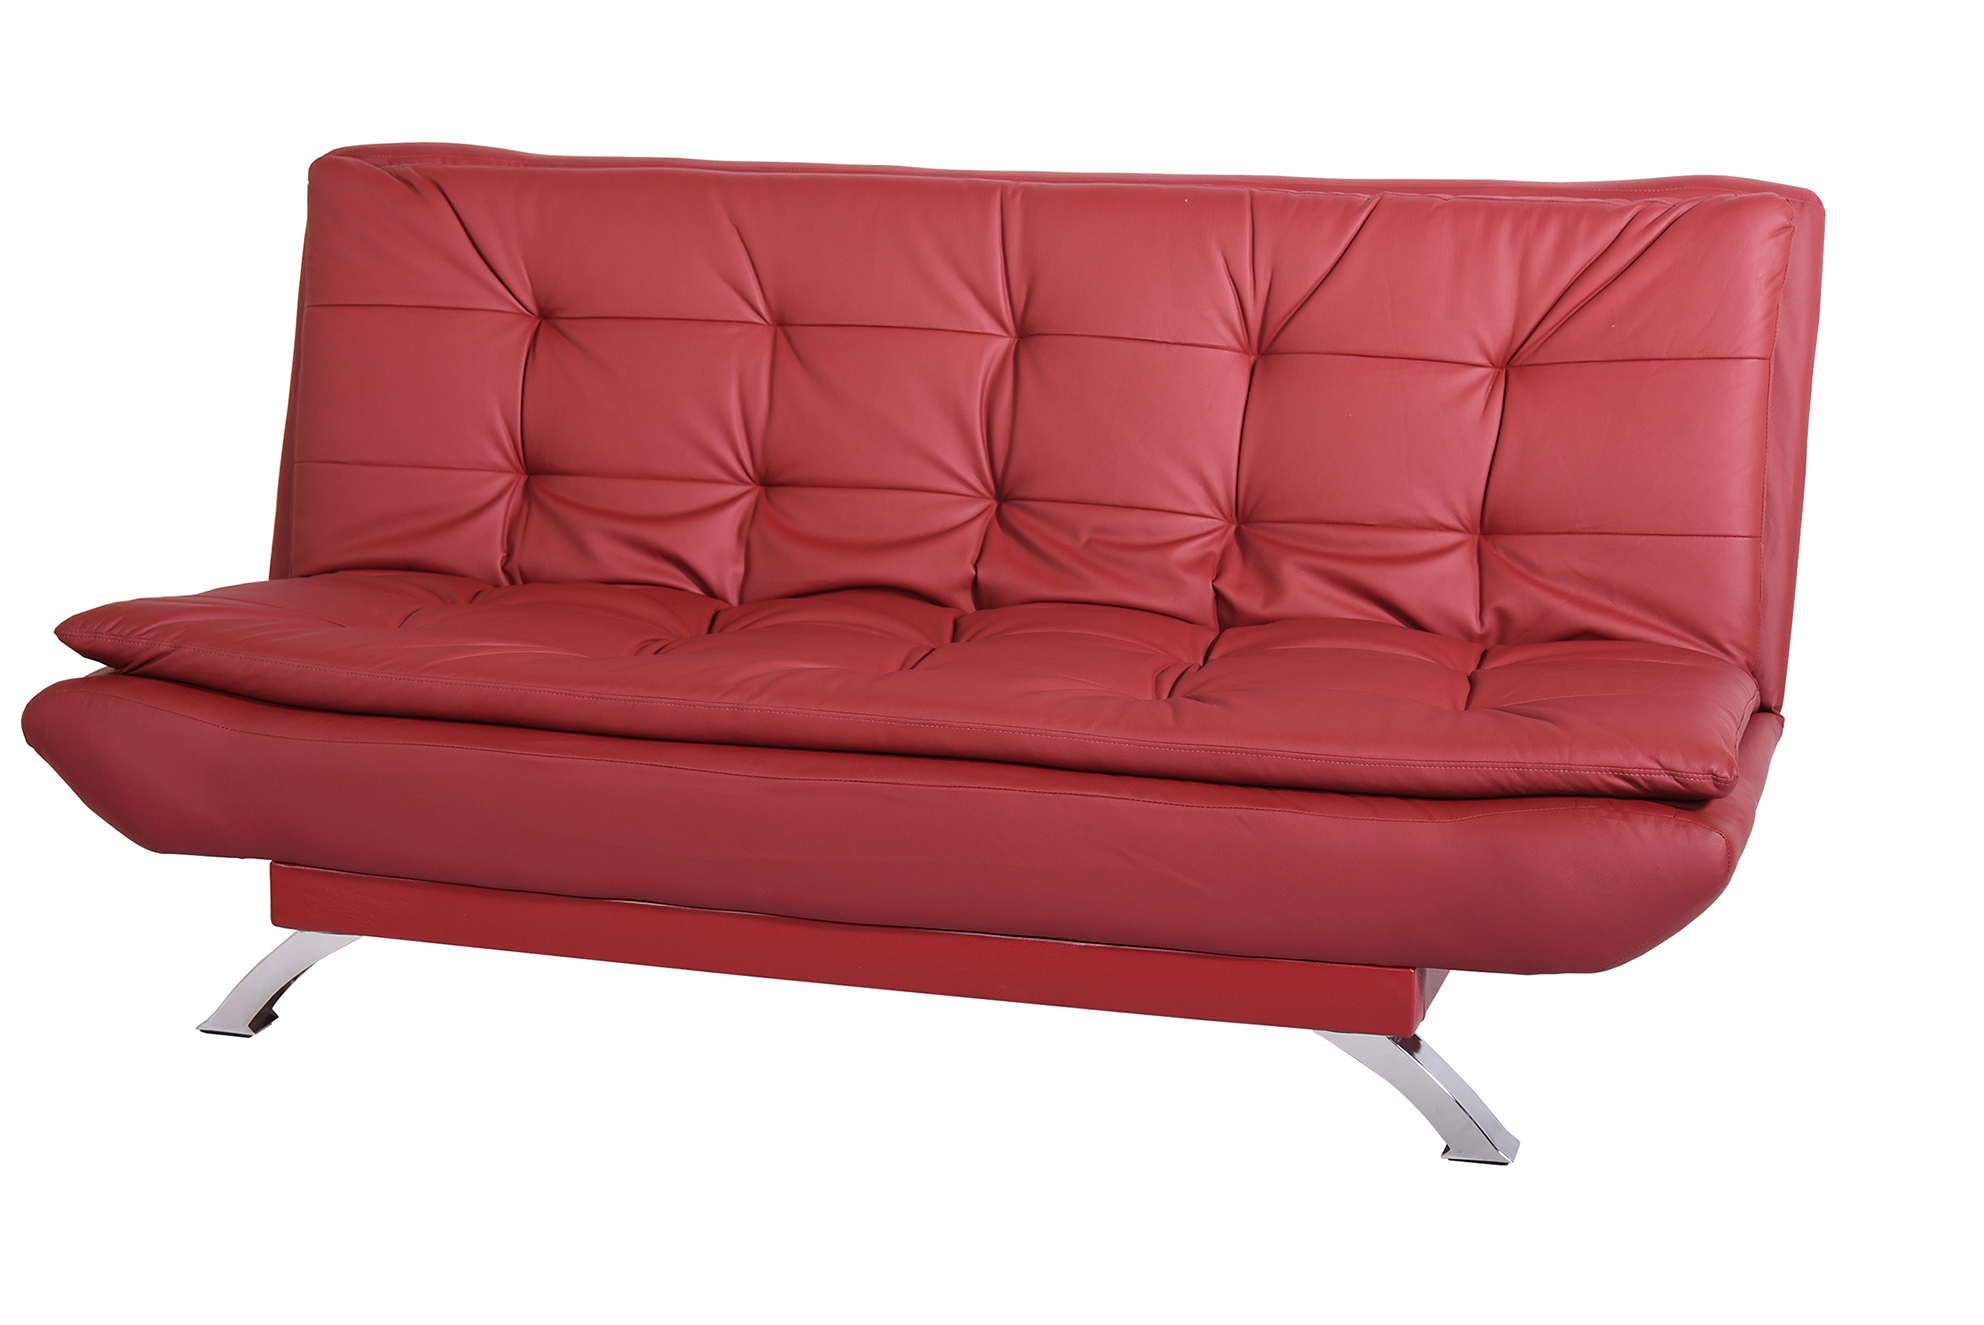 Tanya Sleeper Couch - Discount Decor - cheap mattresses, affordable ...